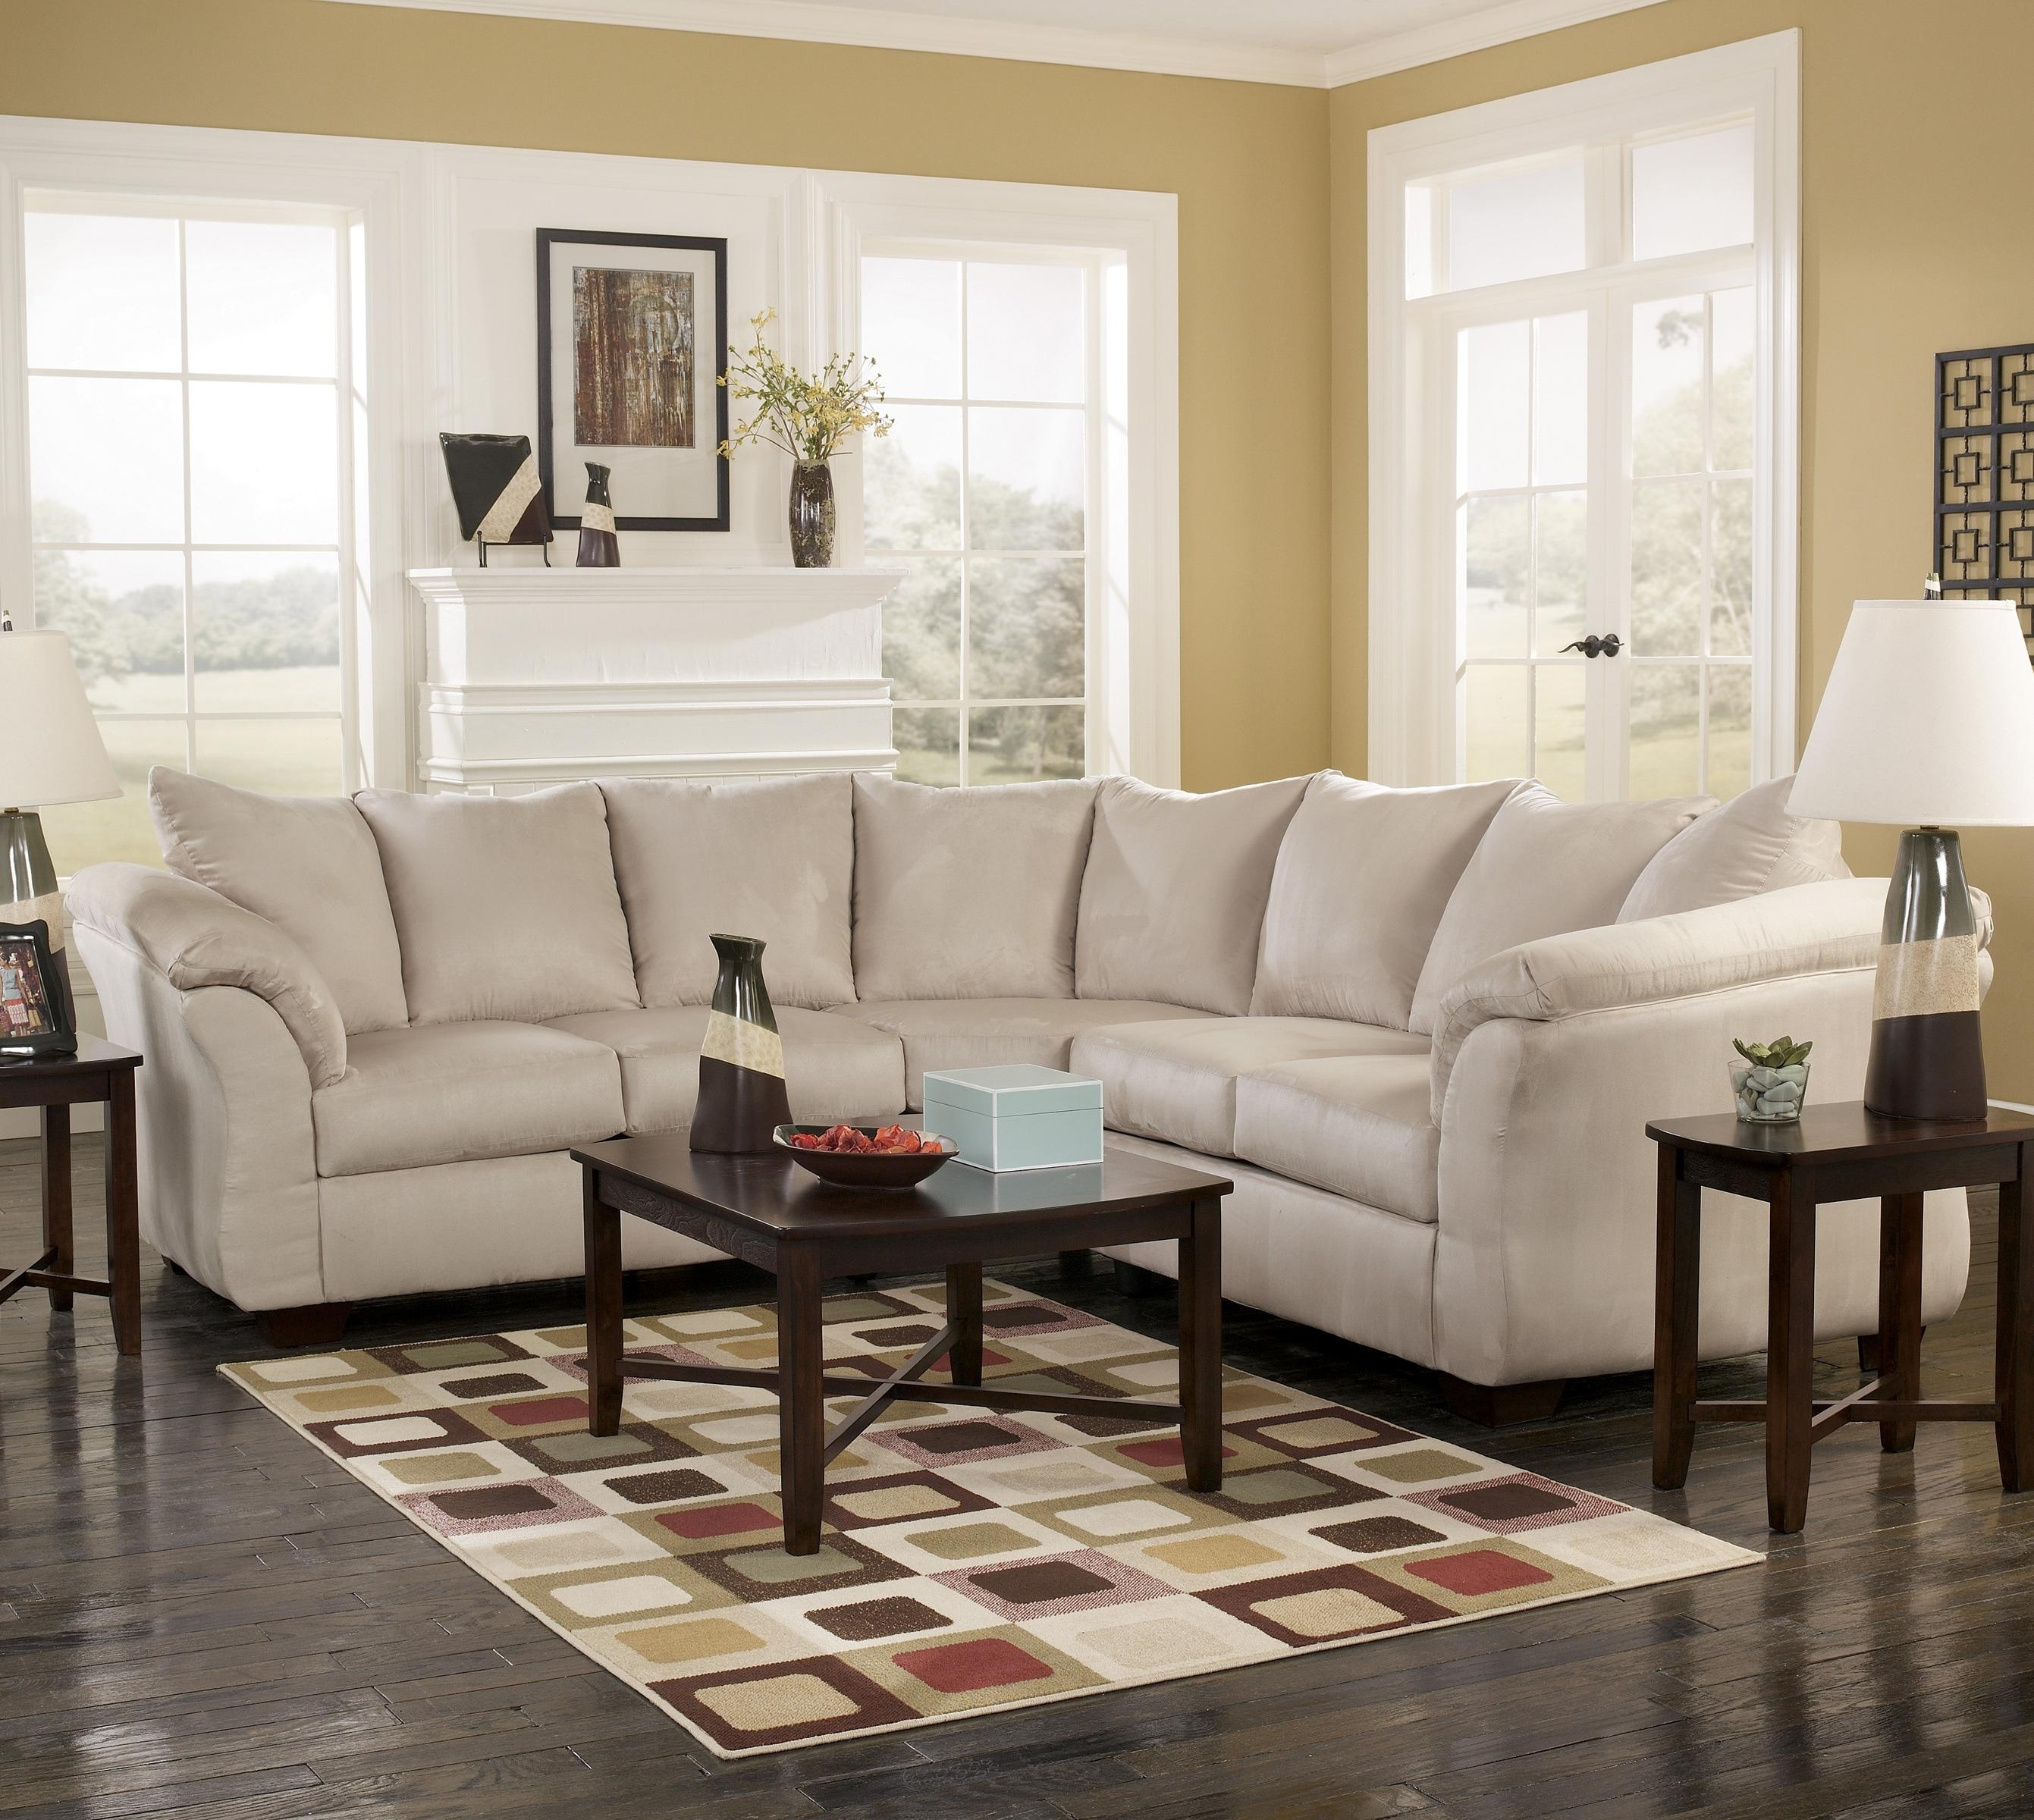 Signature Designashley Darcy – Stone Contemporary Sectional Sofa For Janesville Wi Sectional Sofas (View 10 of 10)